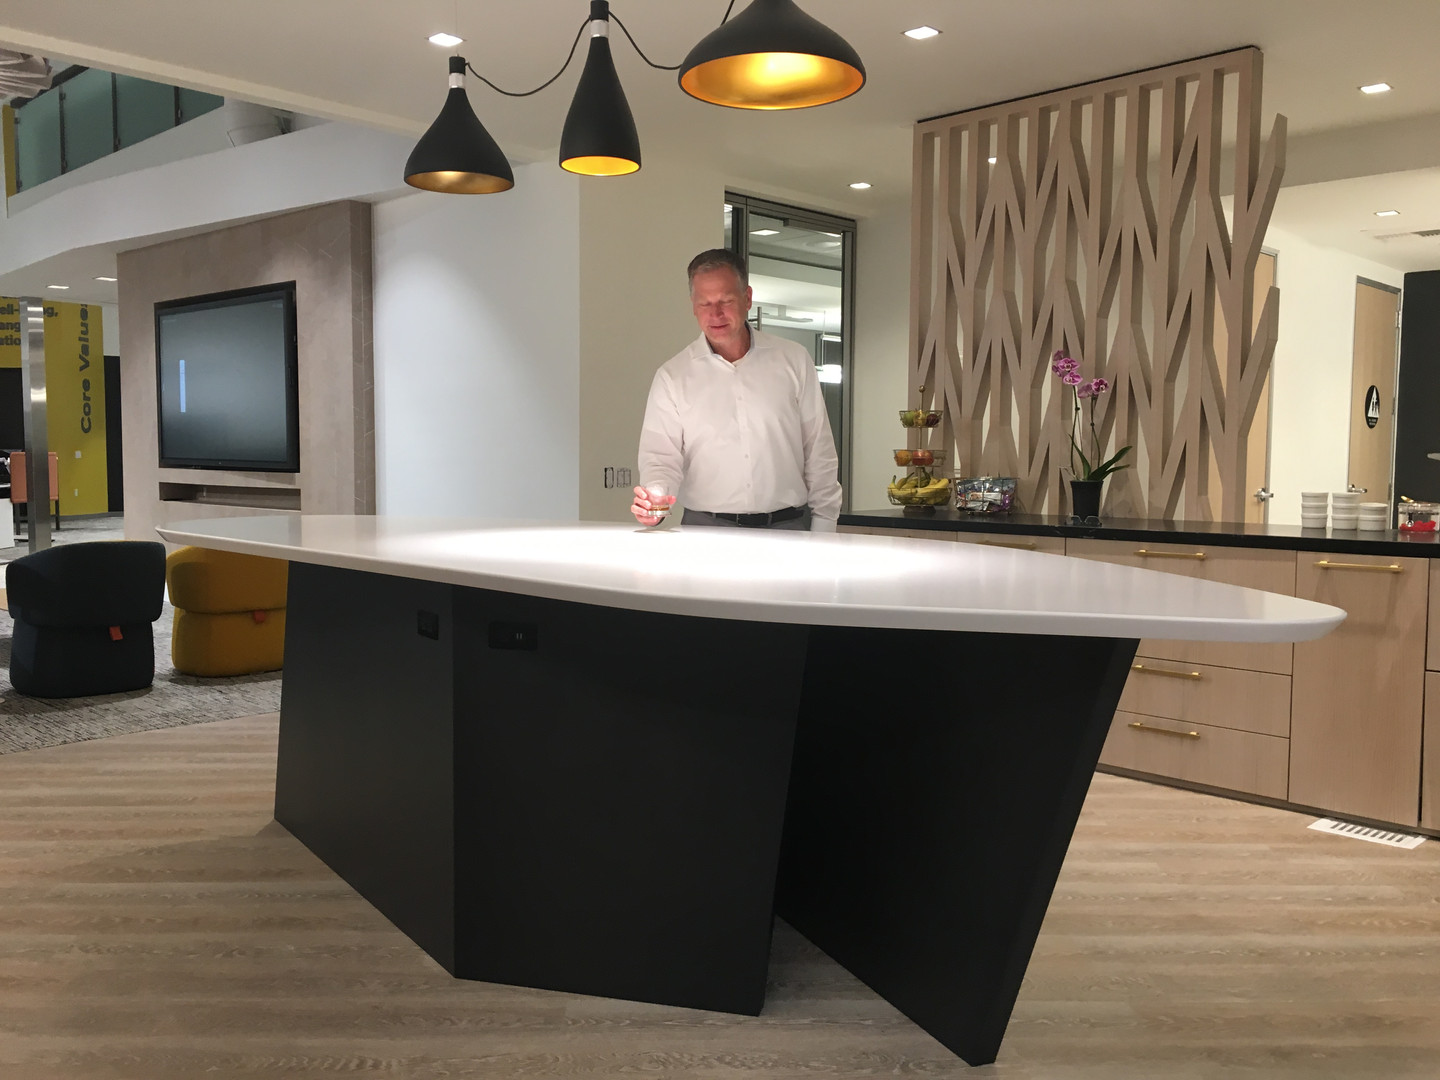 Cesarstone Hospitality Table with steelbase and integrated electrical powerblocks